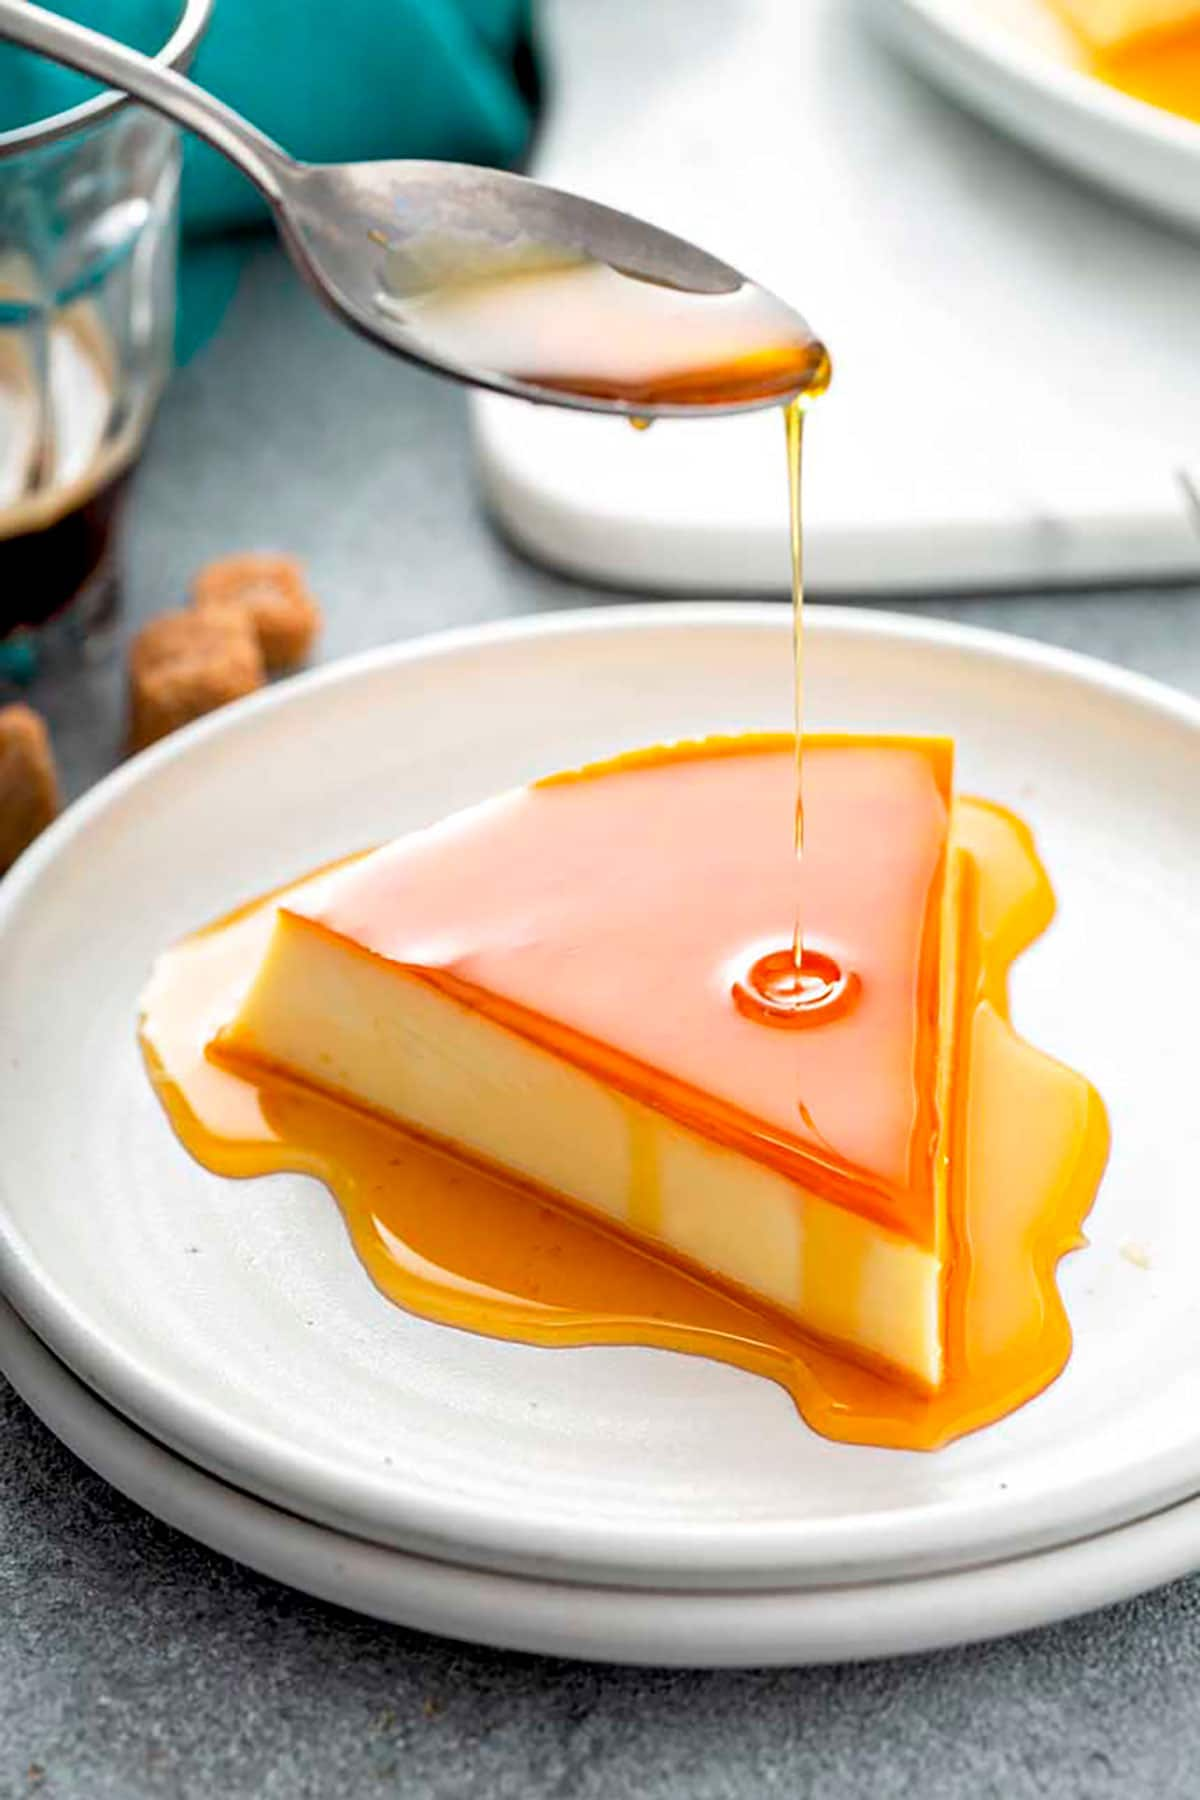 Pouring caramel over flan on a white plate.